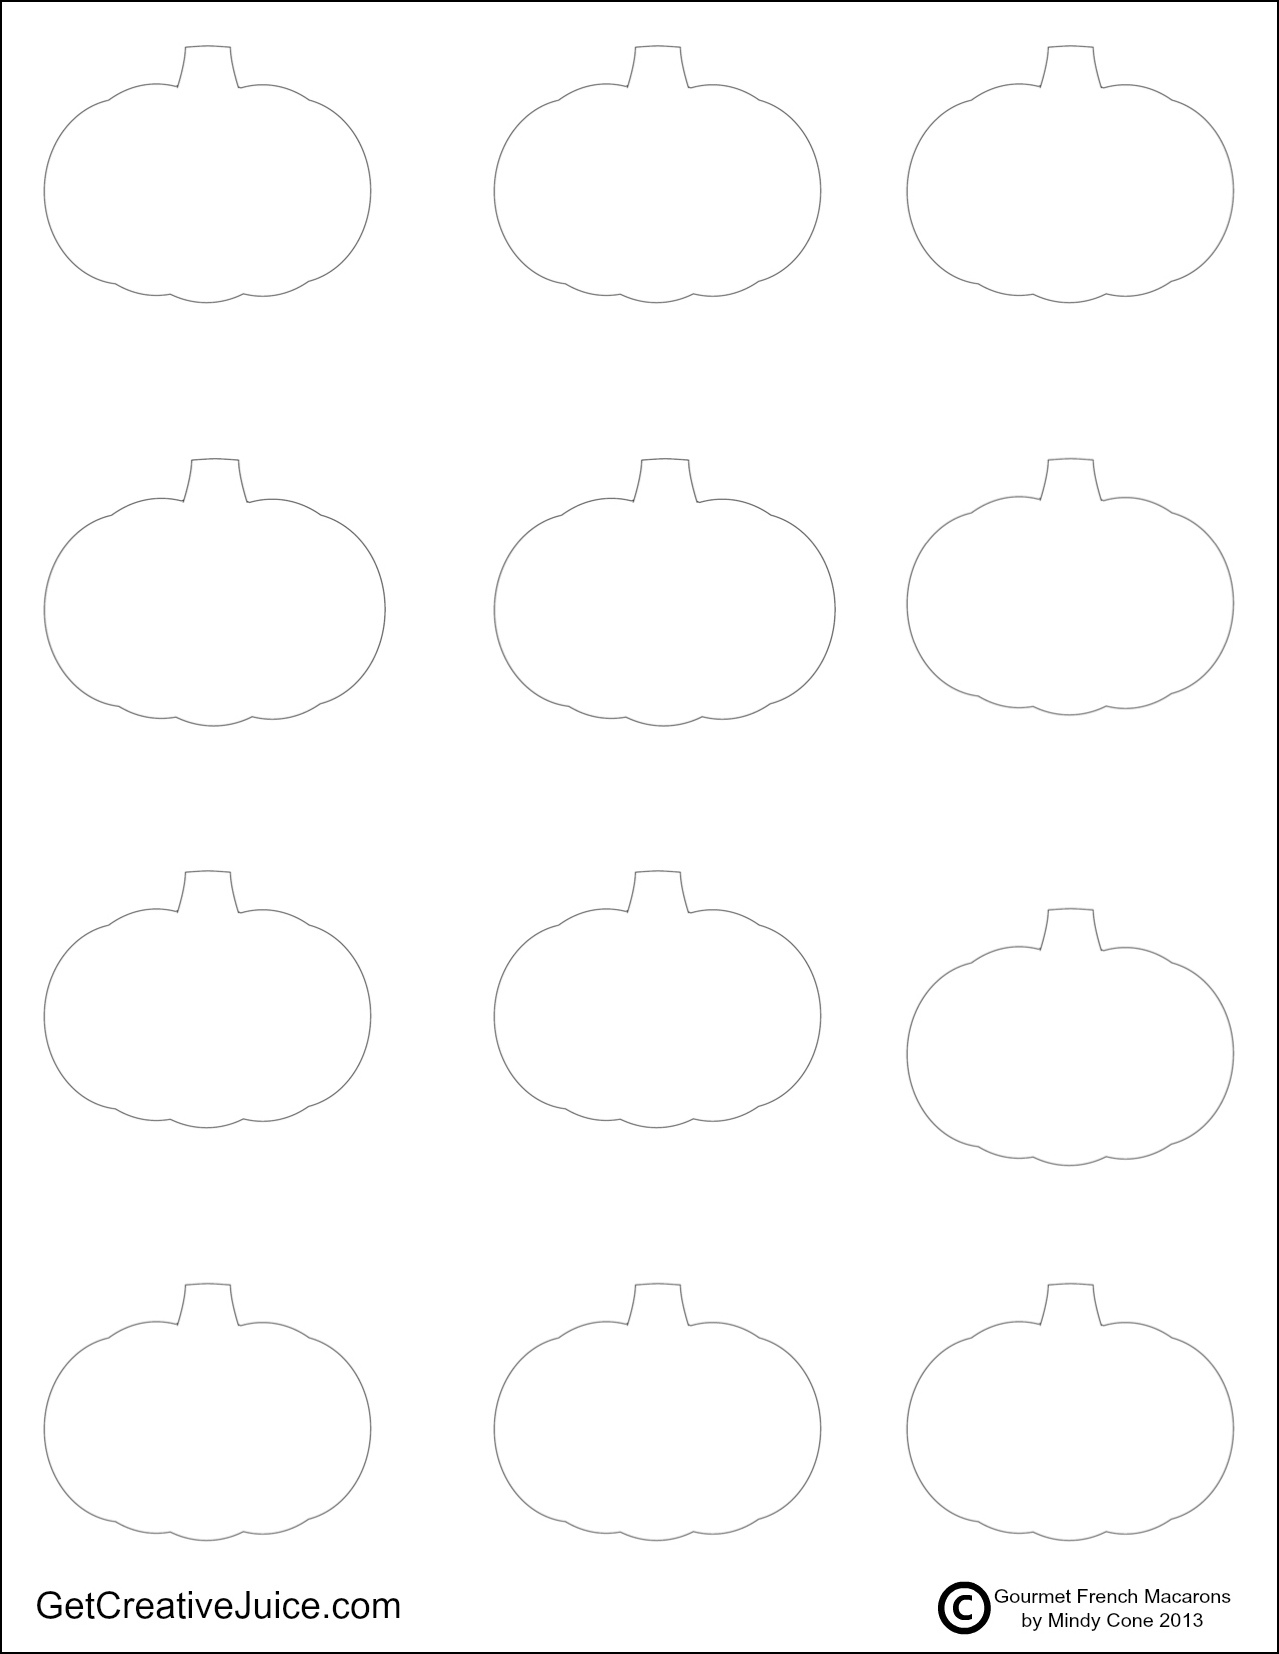 This is a photo of Lucrative Macaron Printable Template